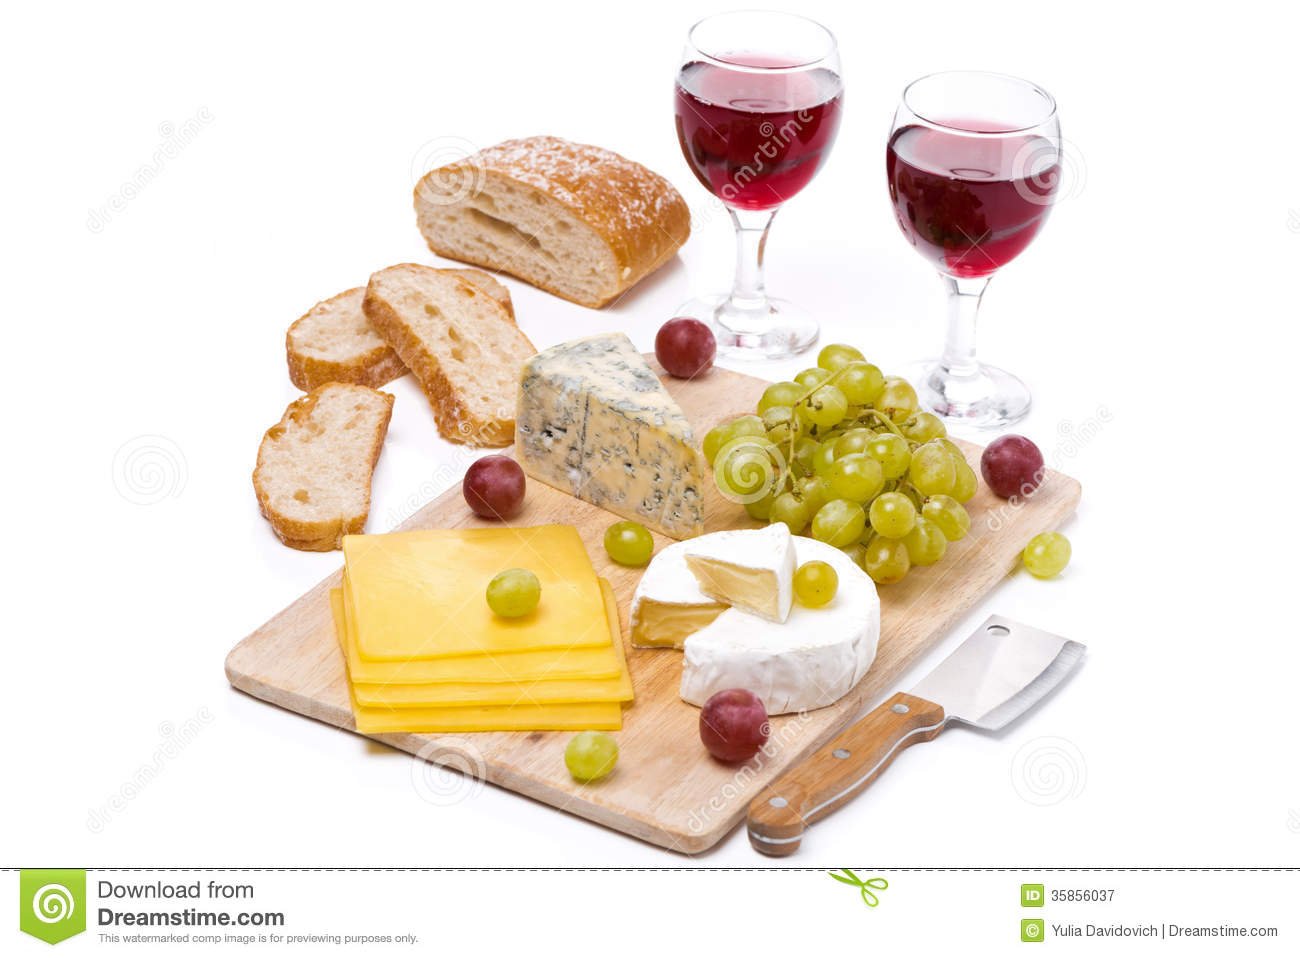 plateau de fromage raisins pain et deux verres de vin rouge image stock image 35856037. Black Bedroom Furniture Sets. Home Design Ideas